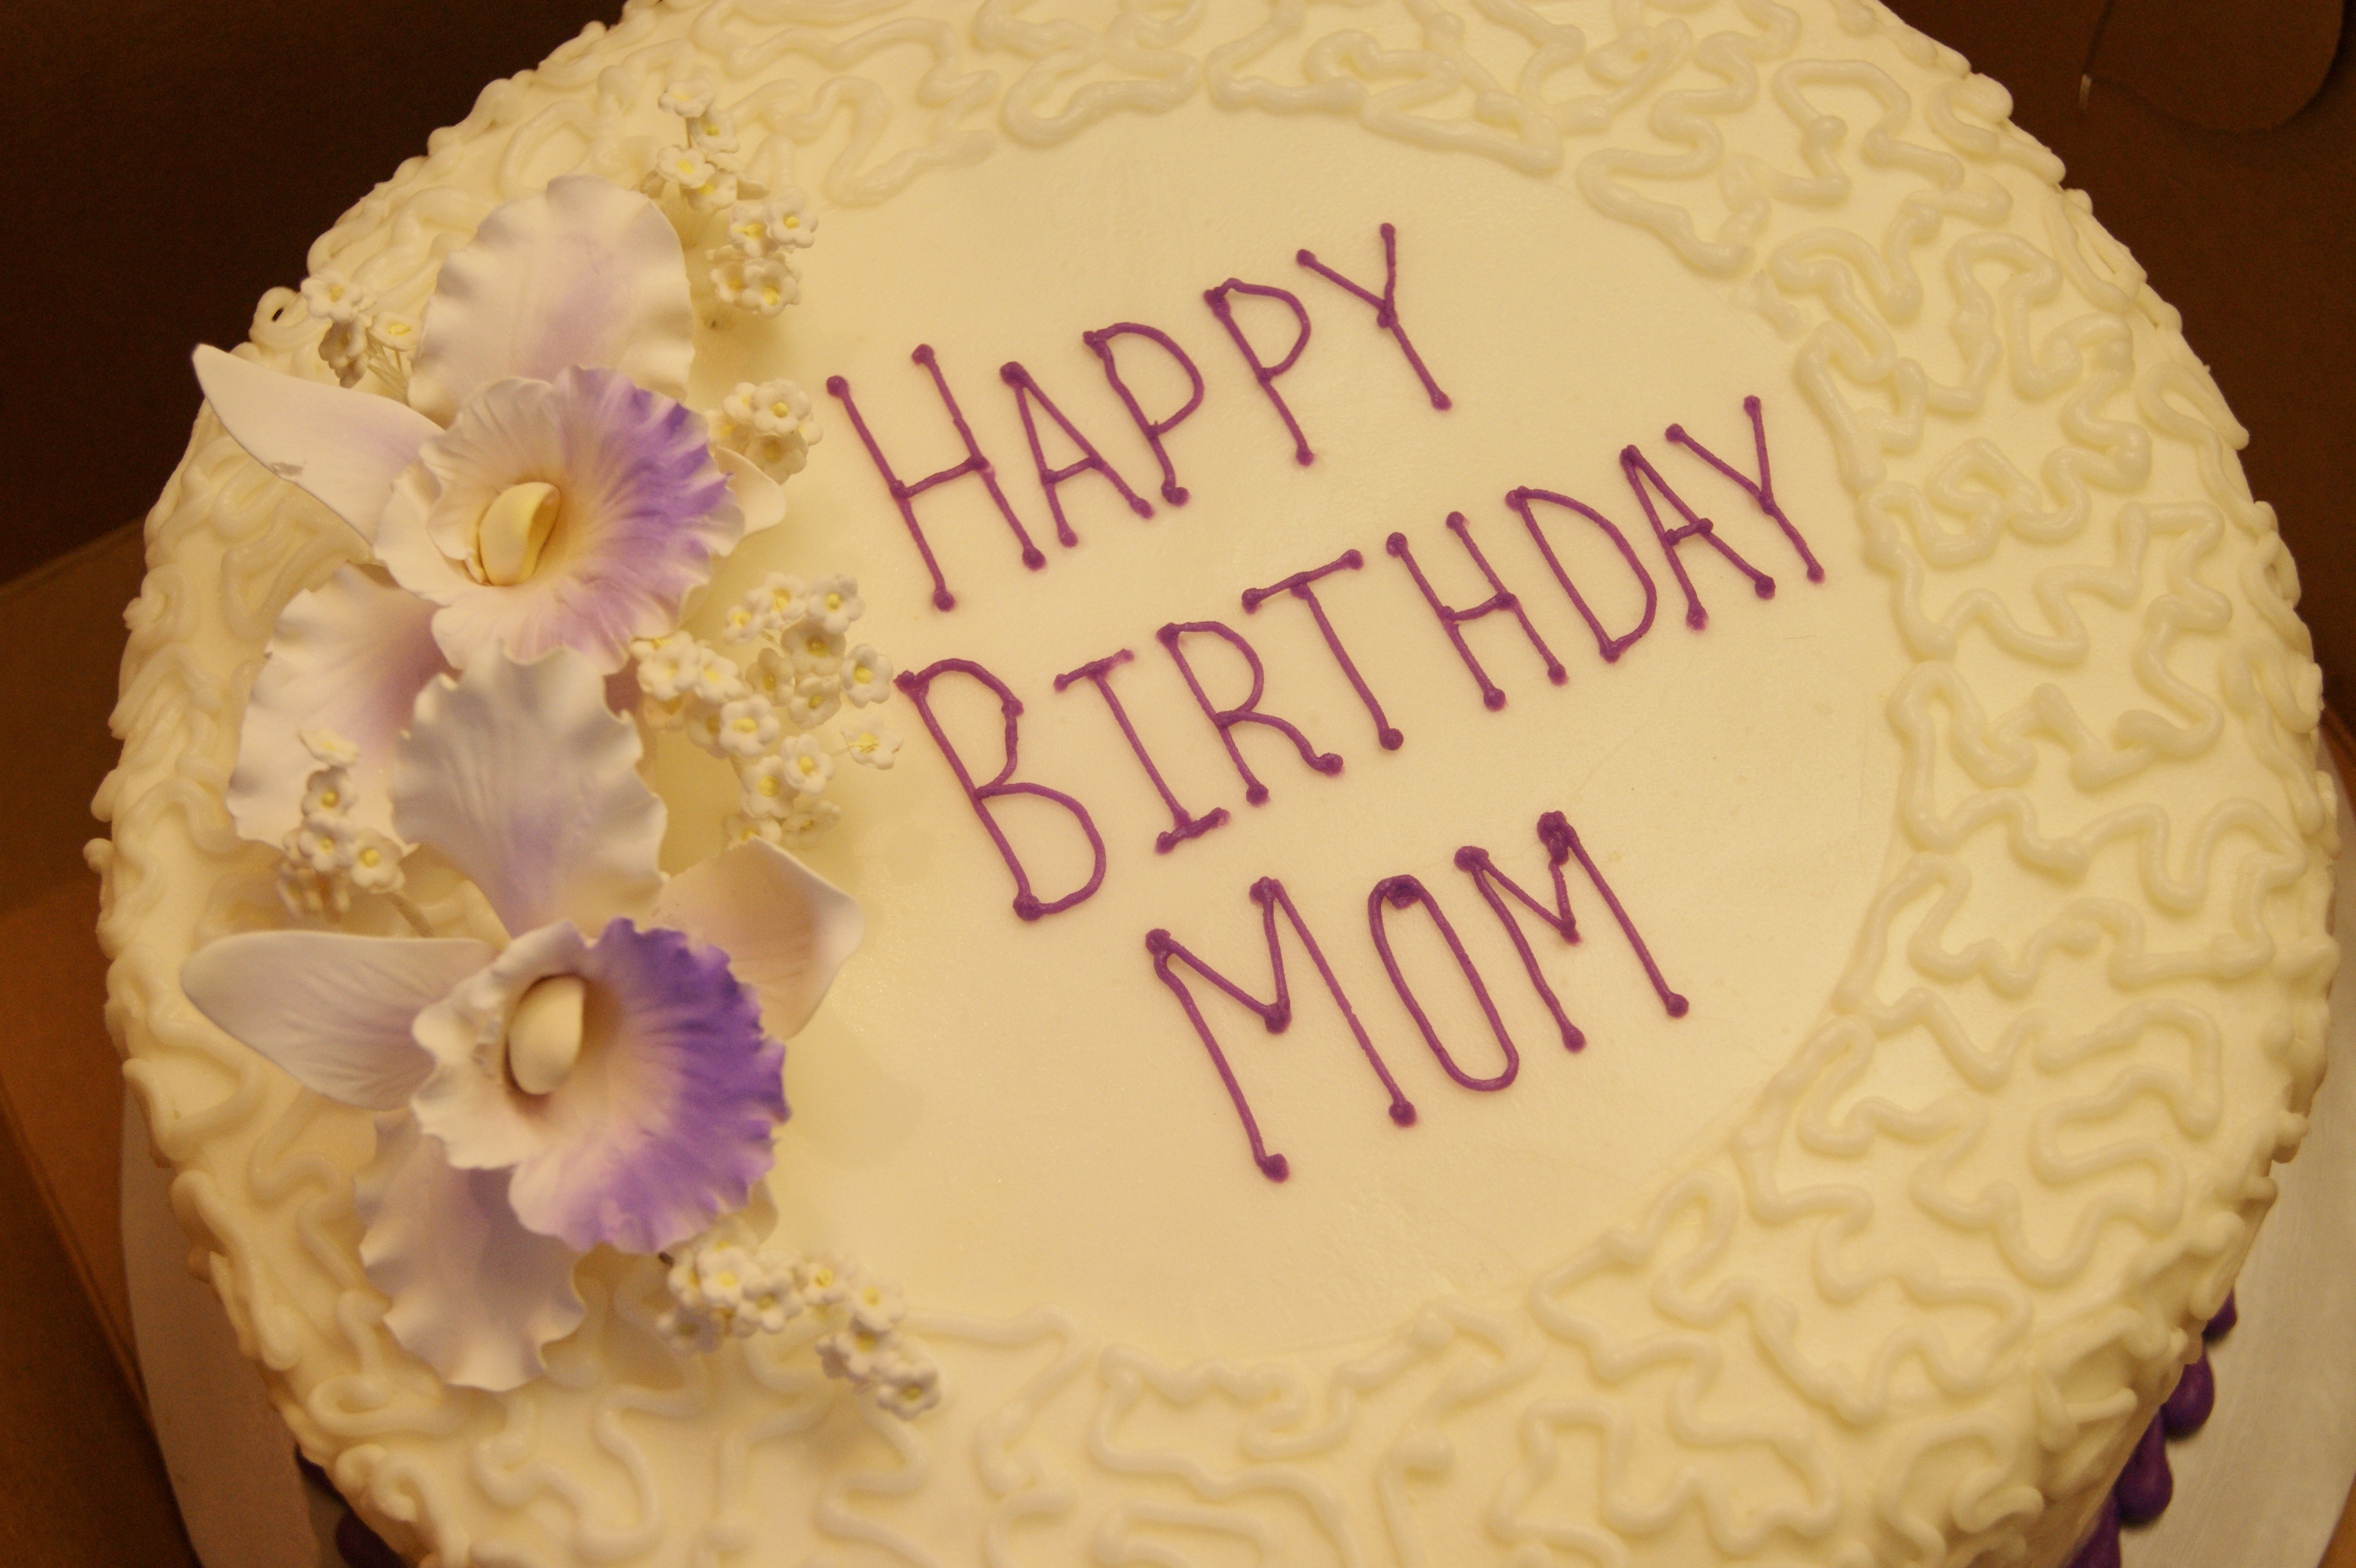 Best ideas about Happy Birthday Mom Cake . Save or Pin Birthday Cake for Mom Rebekahs Custom Bakery in Granbury TX Now.